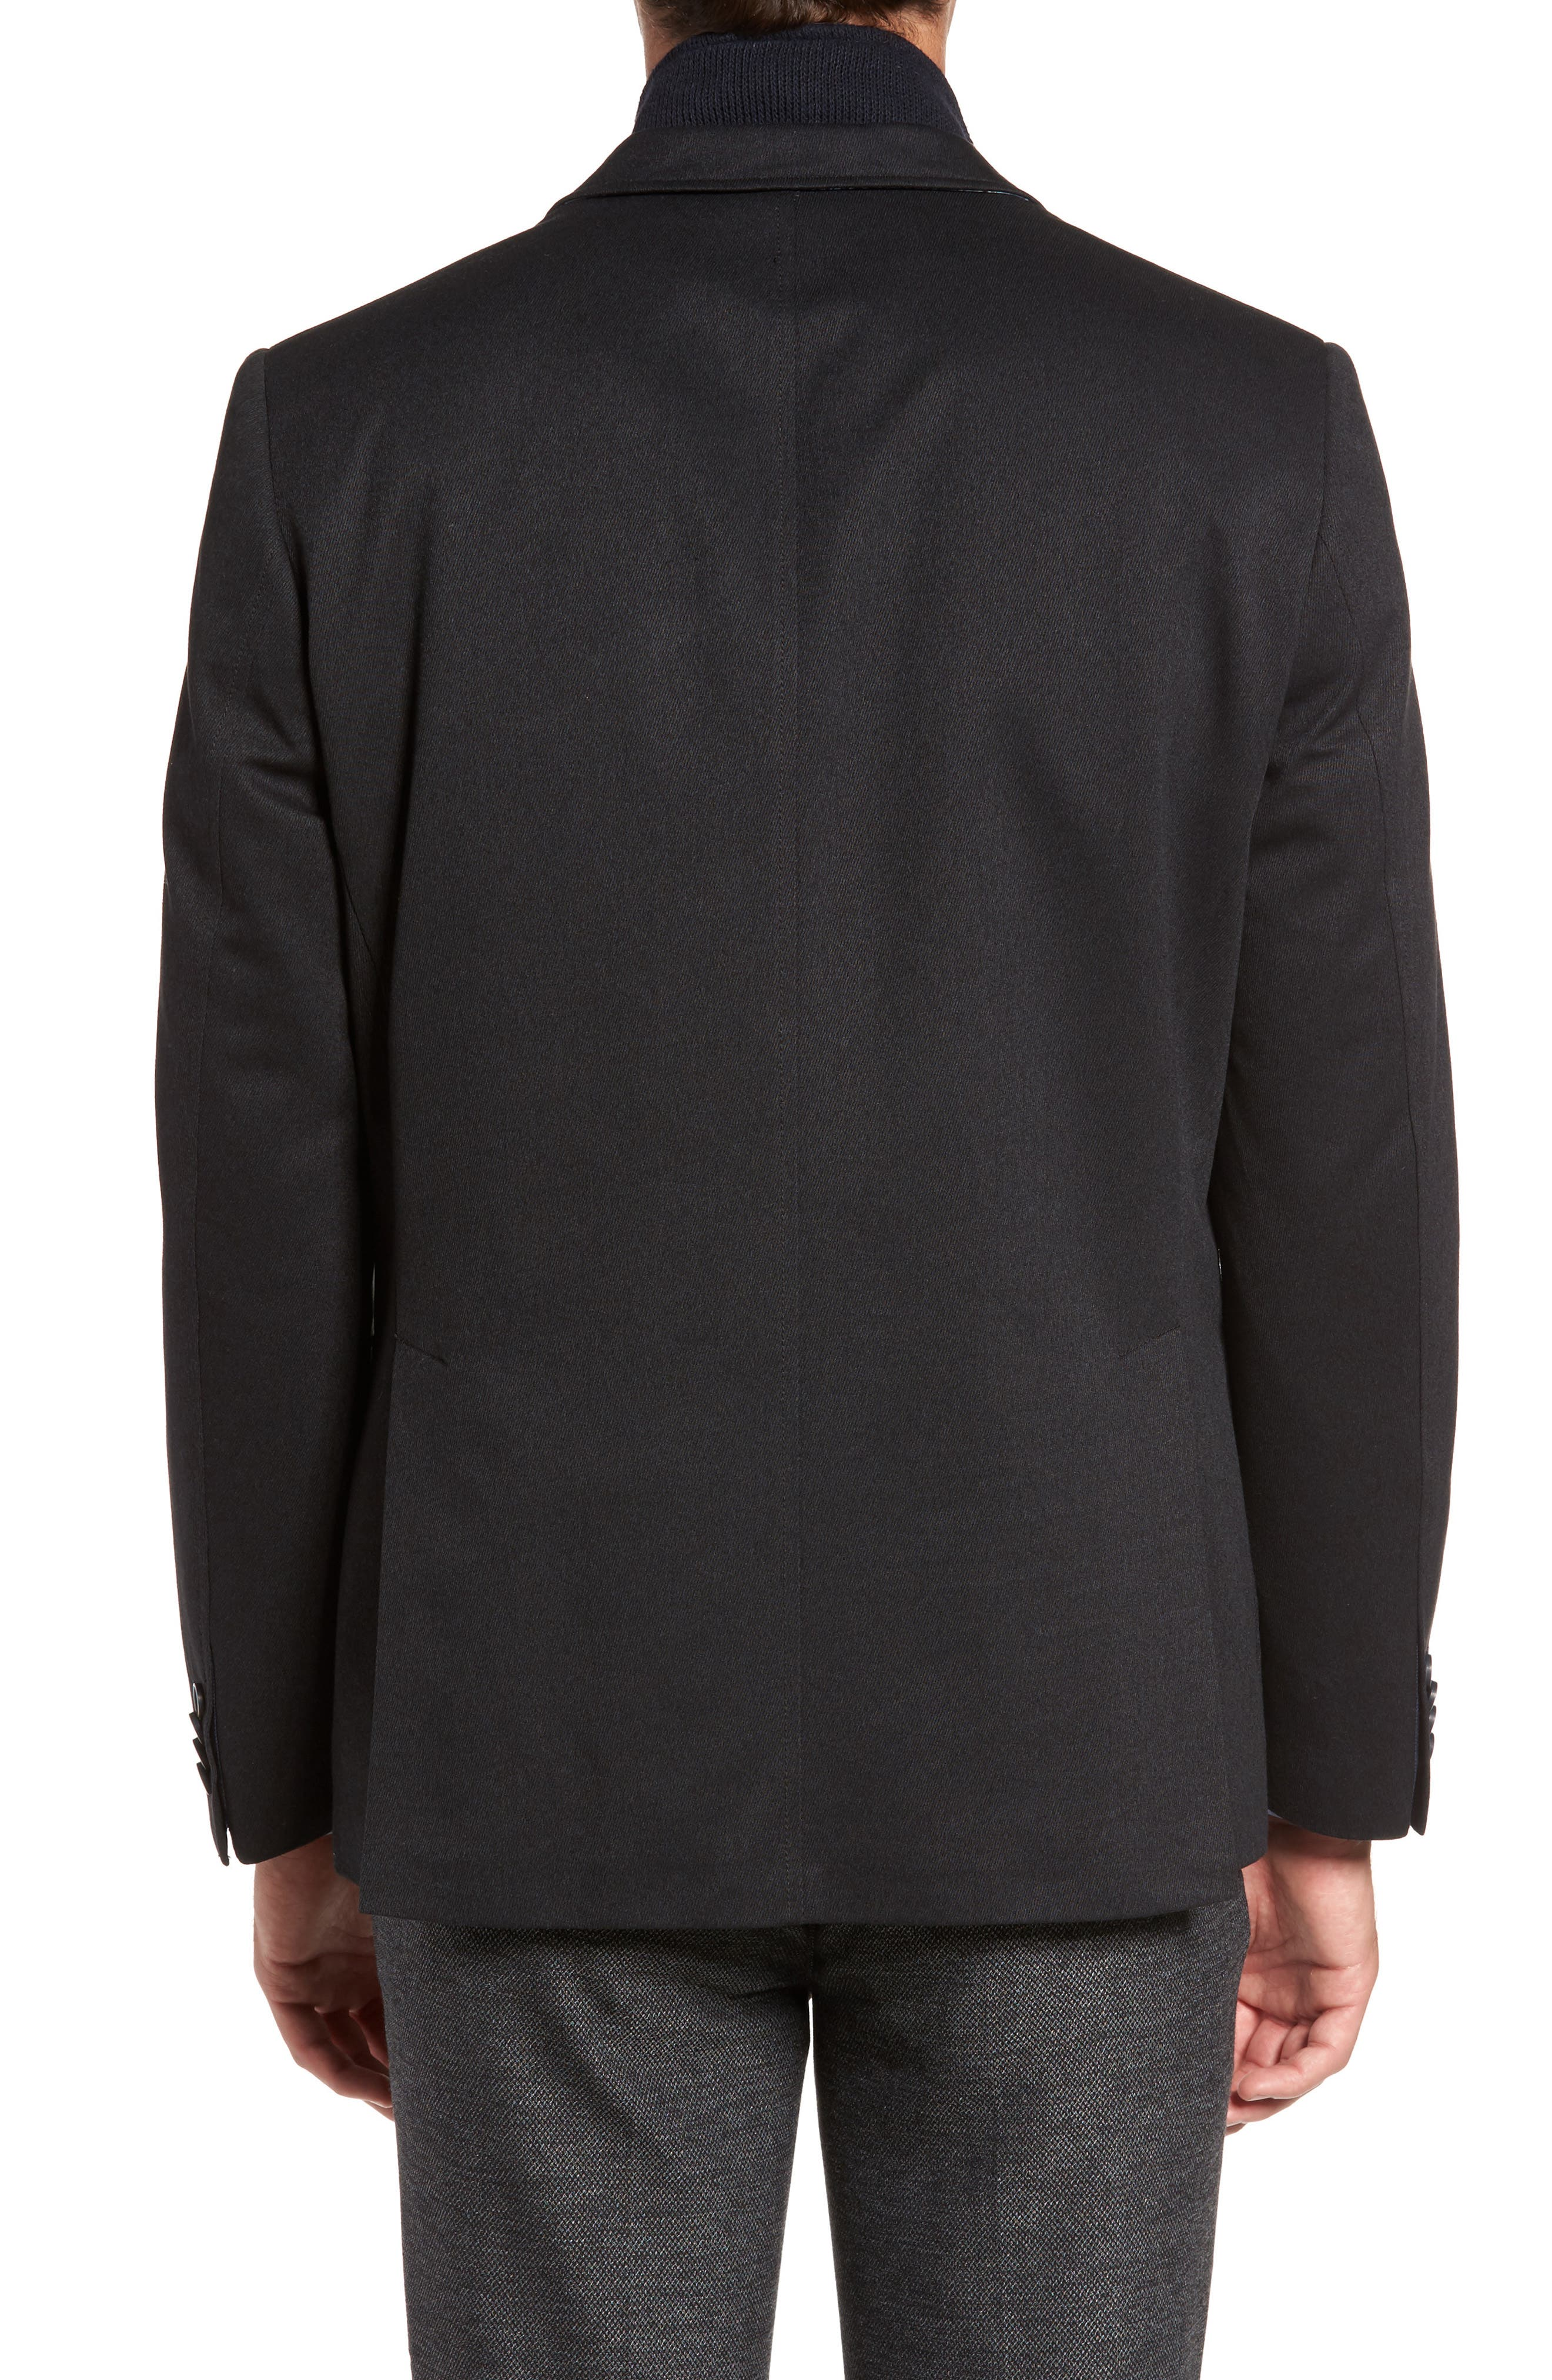 Broderick Technical Outerwear Jacket with Detachable Knit Bib,                             Alternate thumbnail 2, color,                             Navy